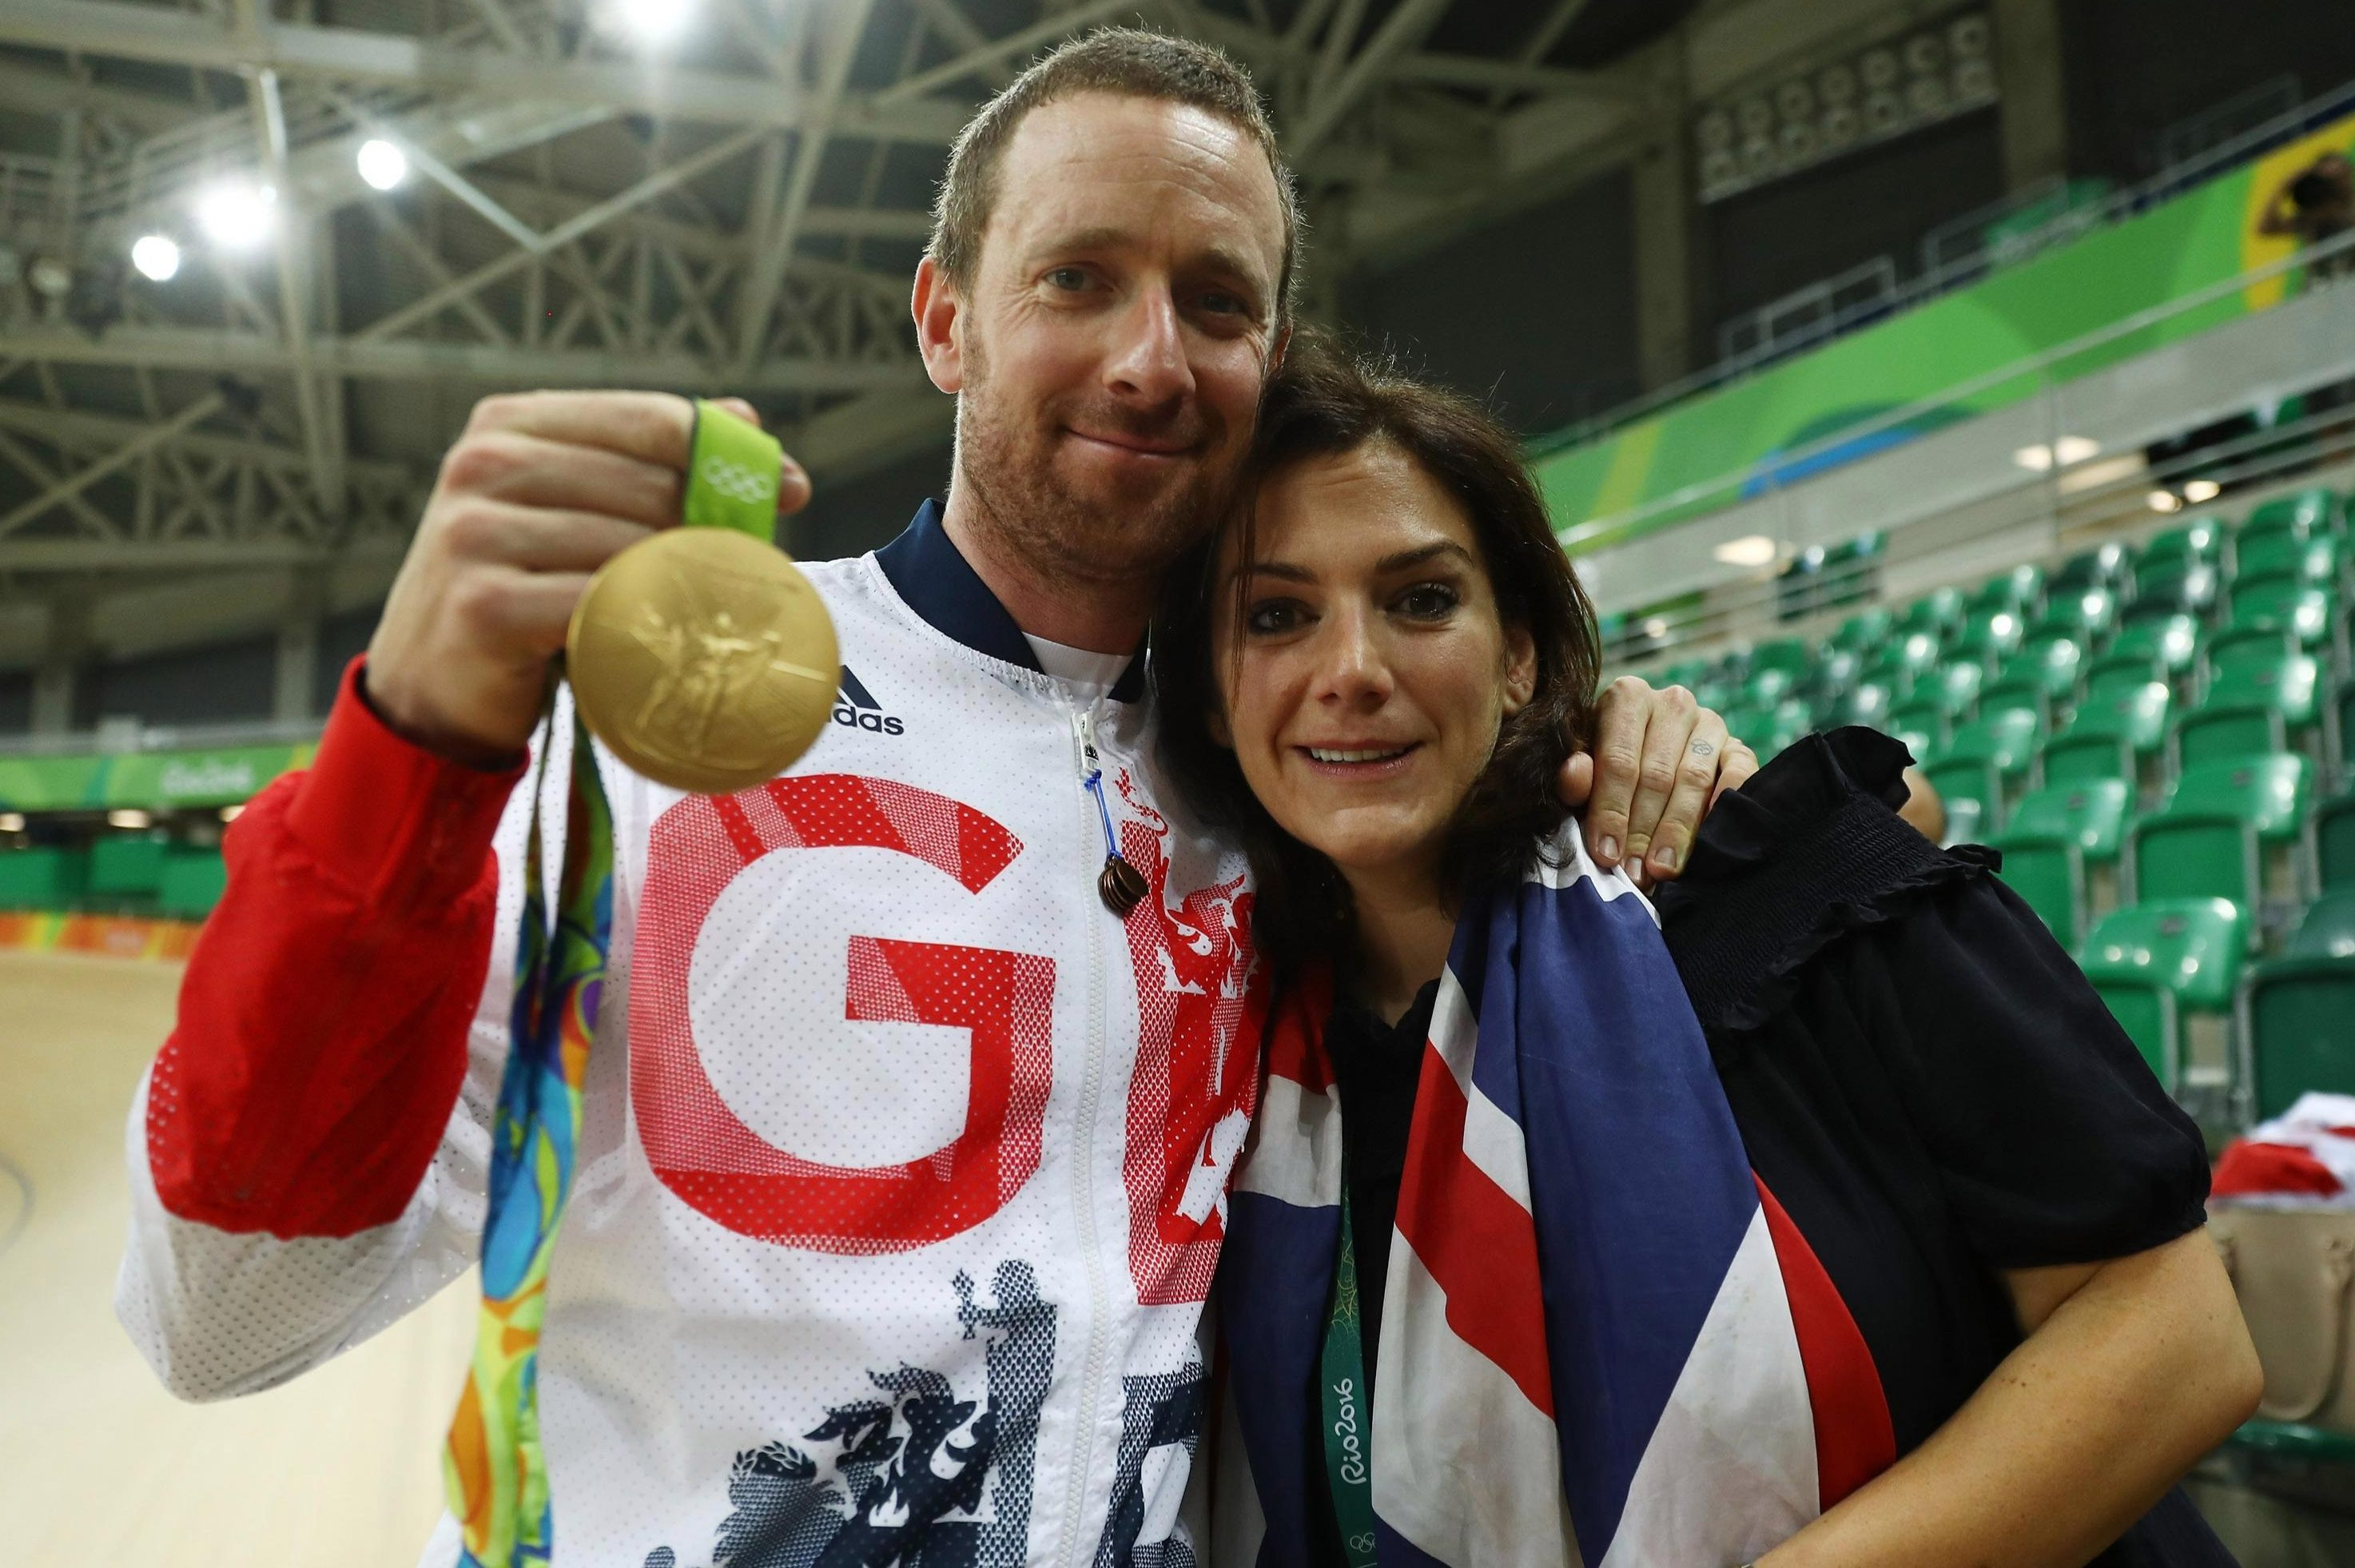 Sir Bradley Wiggins admitted his wife Cath was 'nearly killed' by the doping allegations